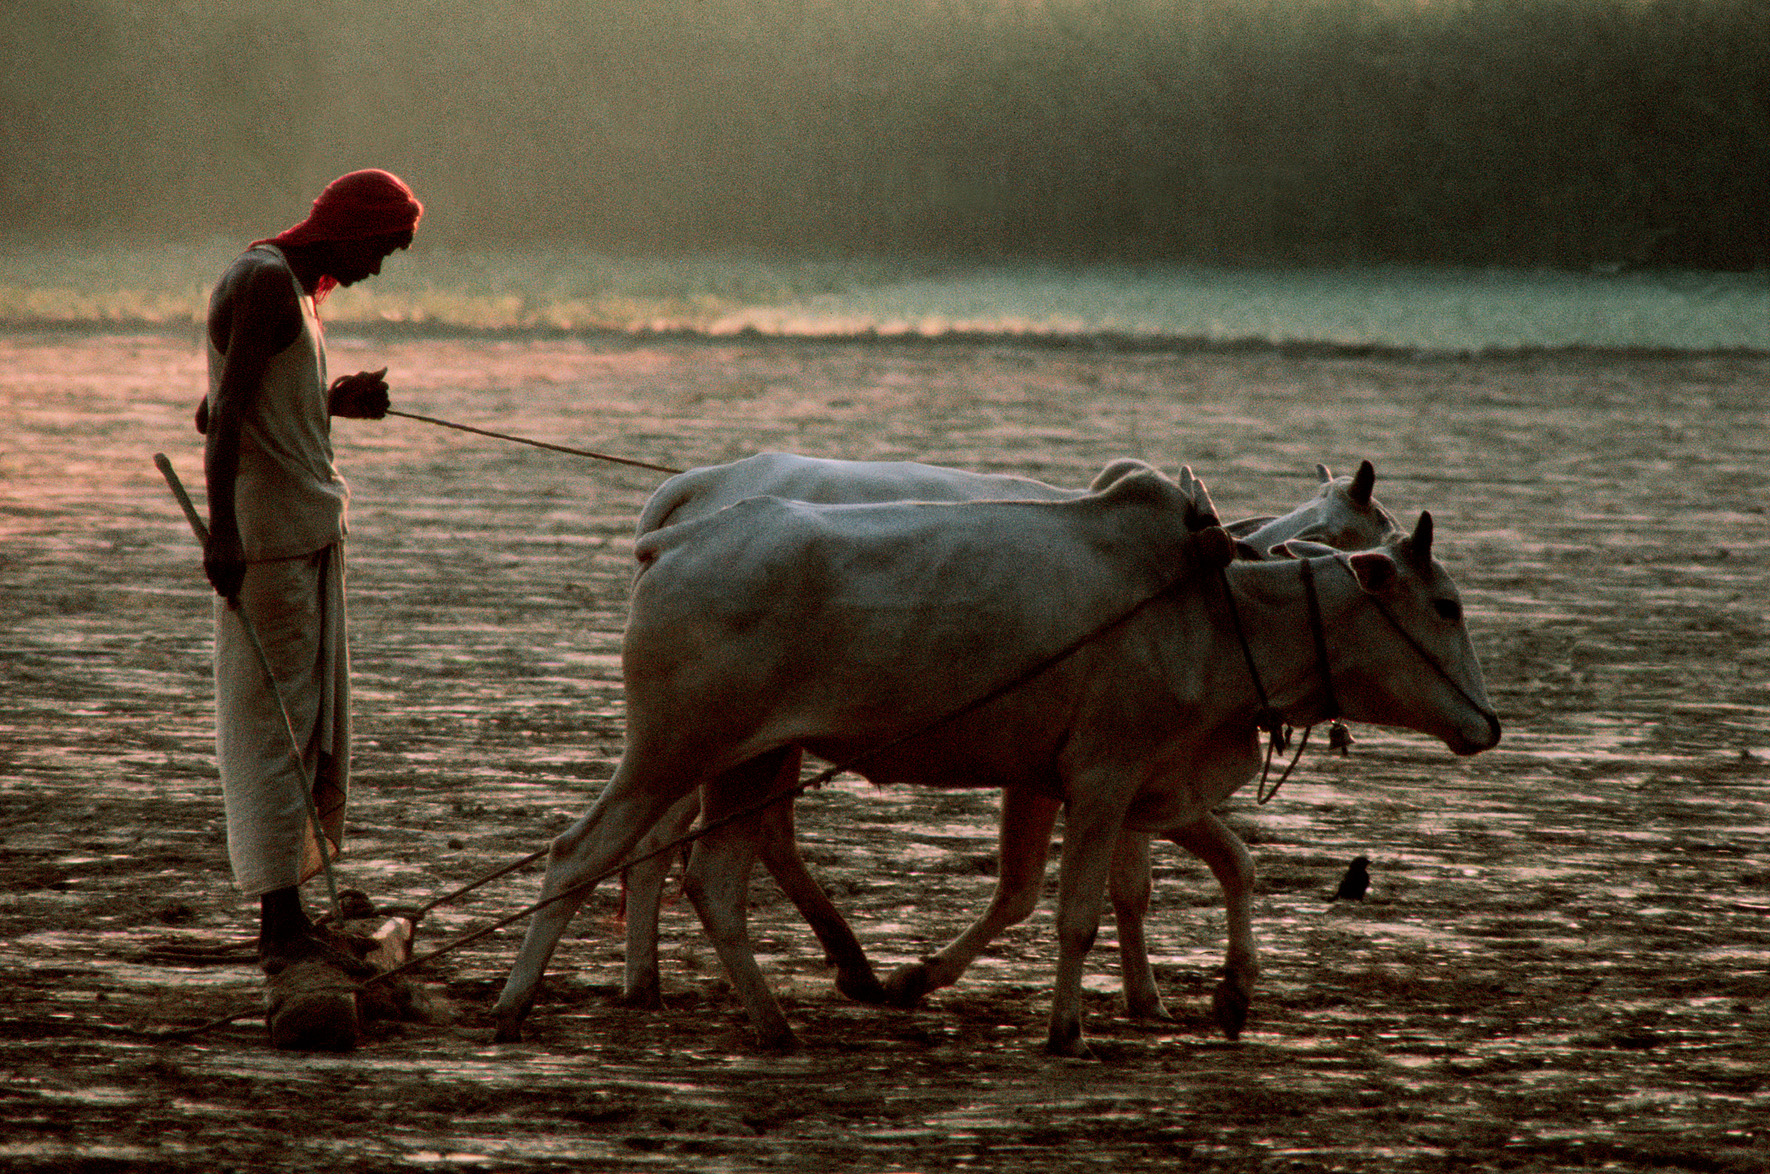 © Frank Horvat – Plough, India, 1975, Courtesy KLV Art Projects